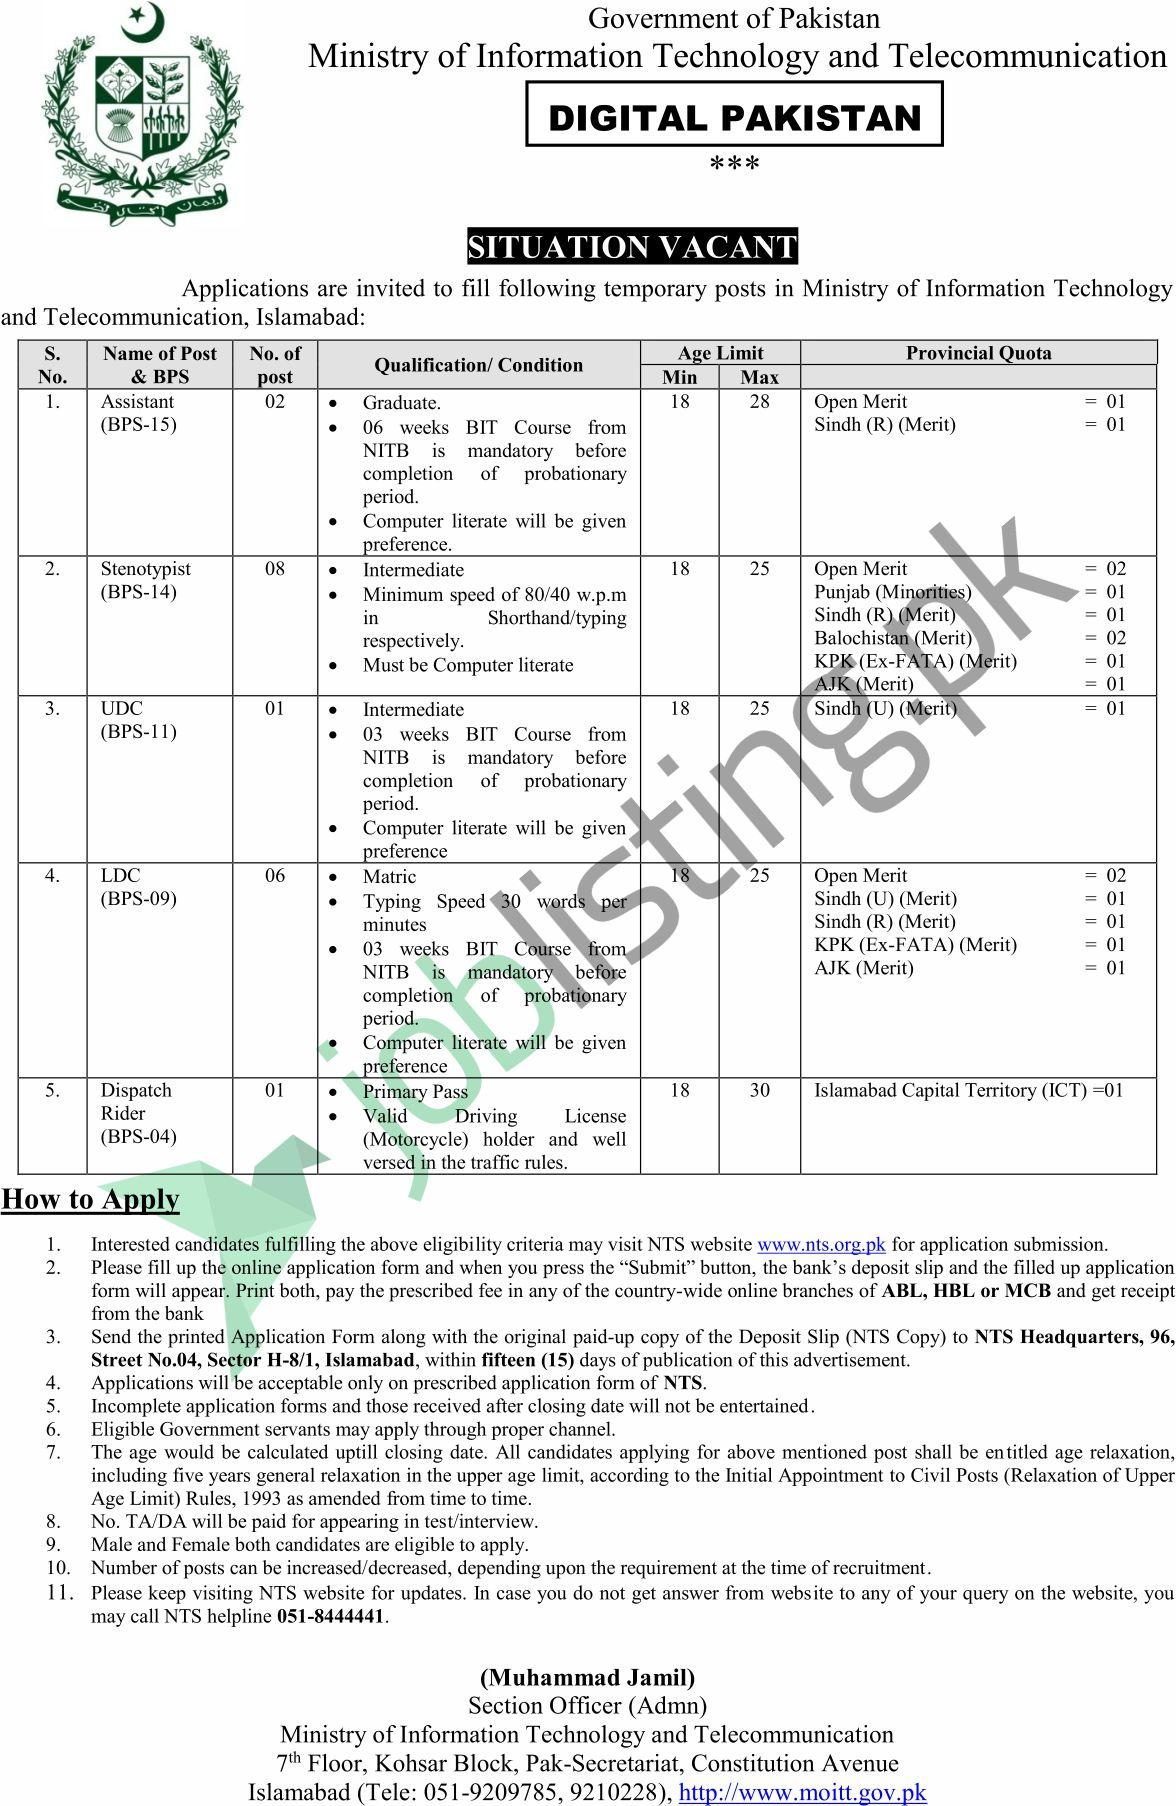 Ministry of Information Technology & Telecommunication Jobs Dec 2020